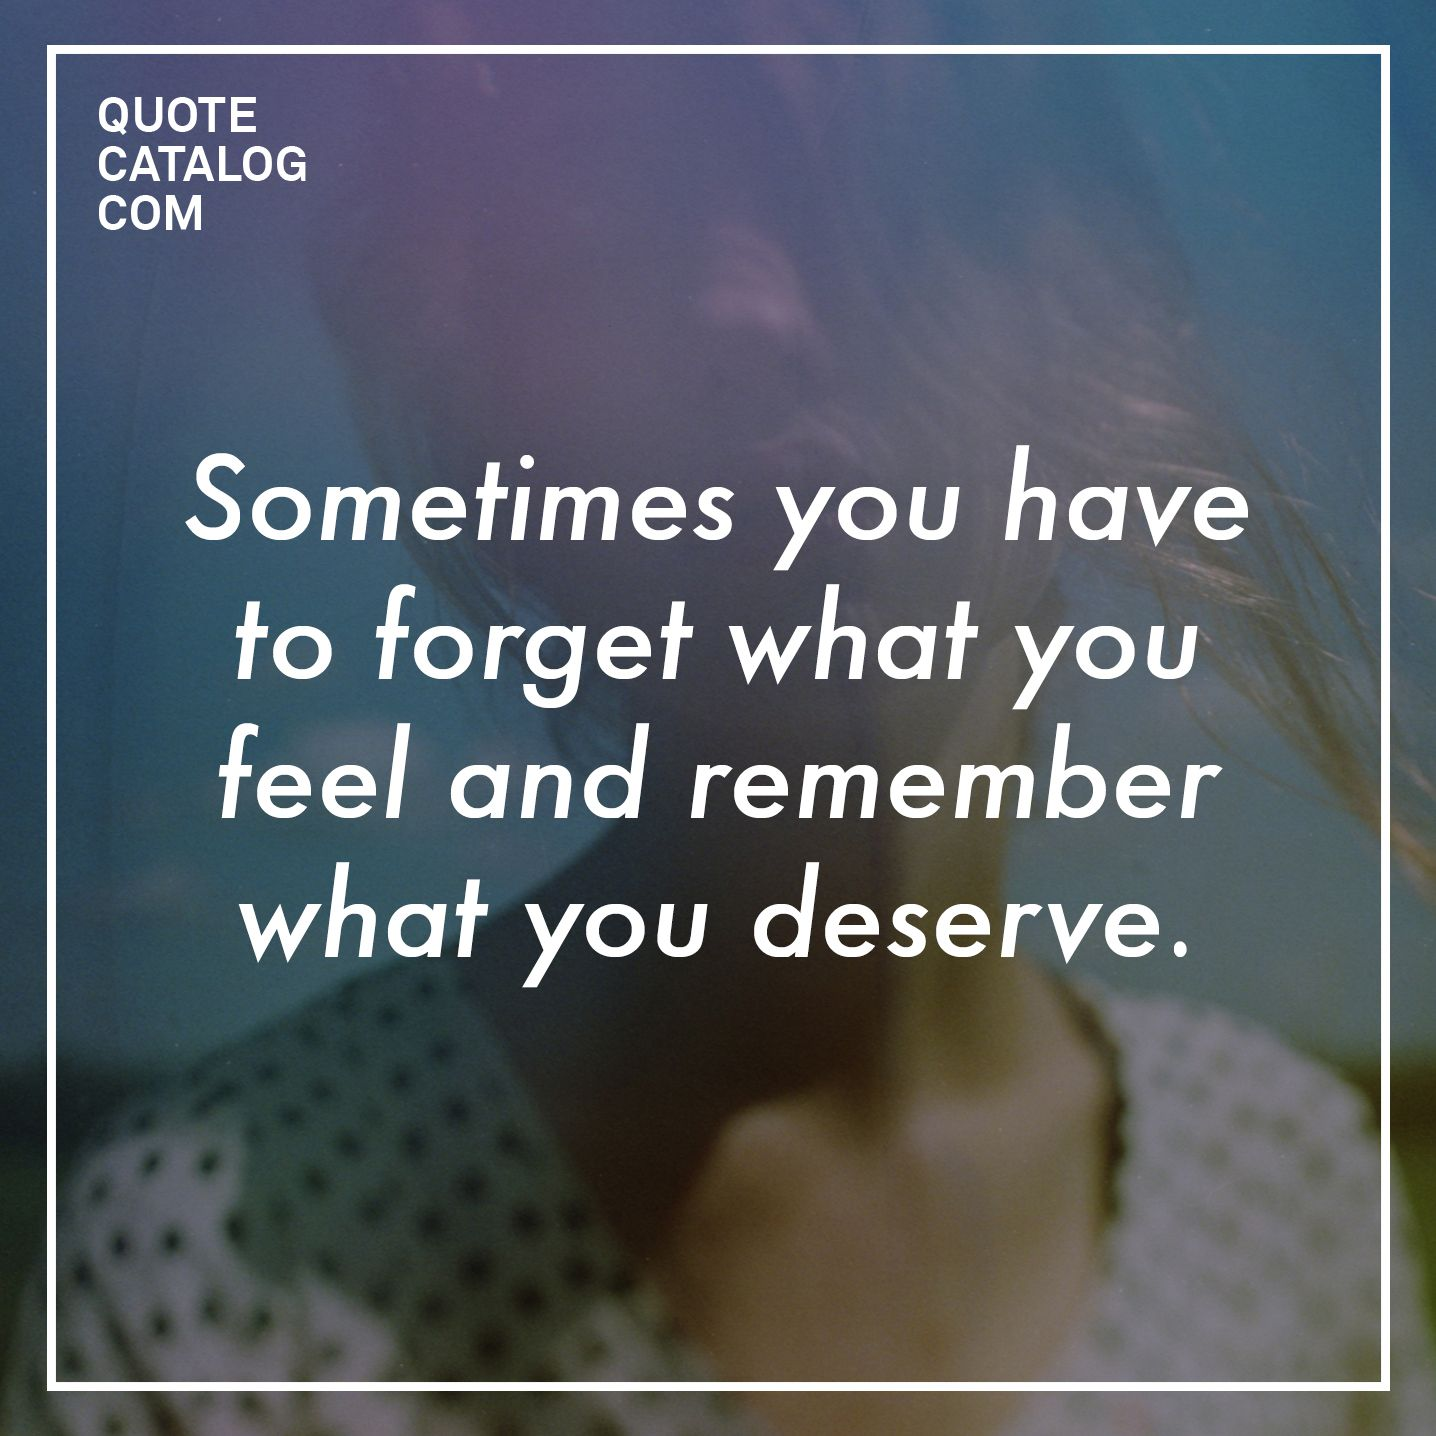 """Sometimes you have to forget what you feel and remember what you deserve.""  (photo via Nishe: https://www.instagram.com/nishediary/)"